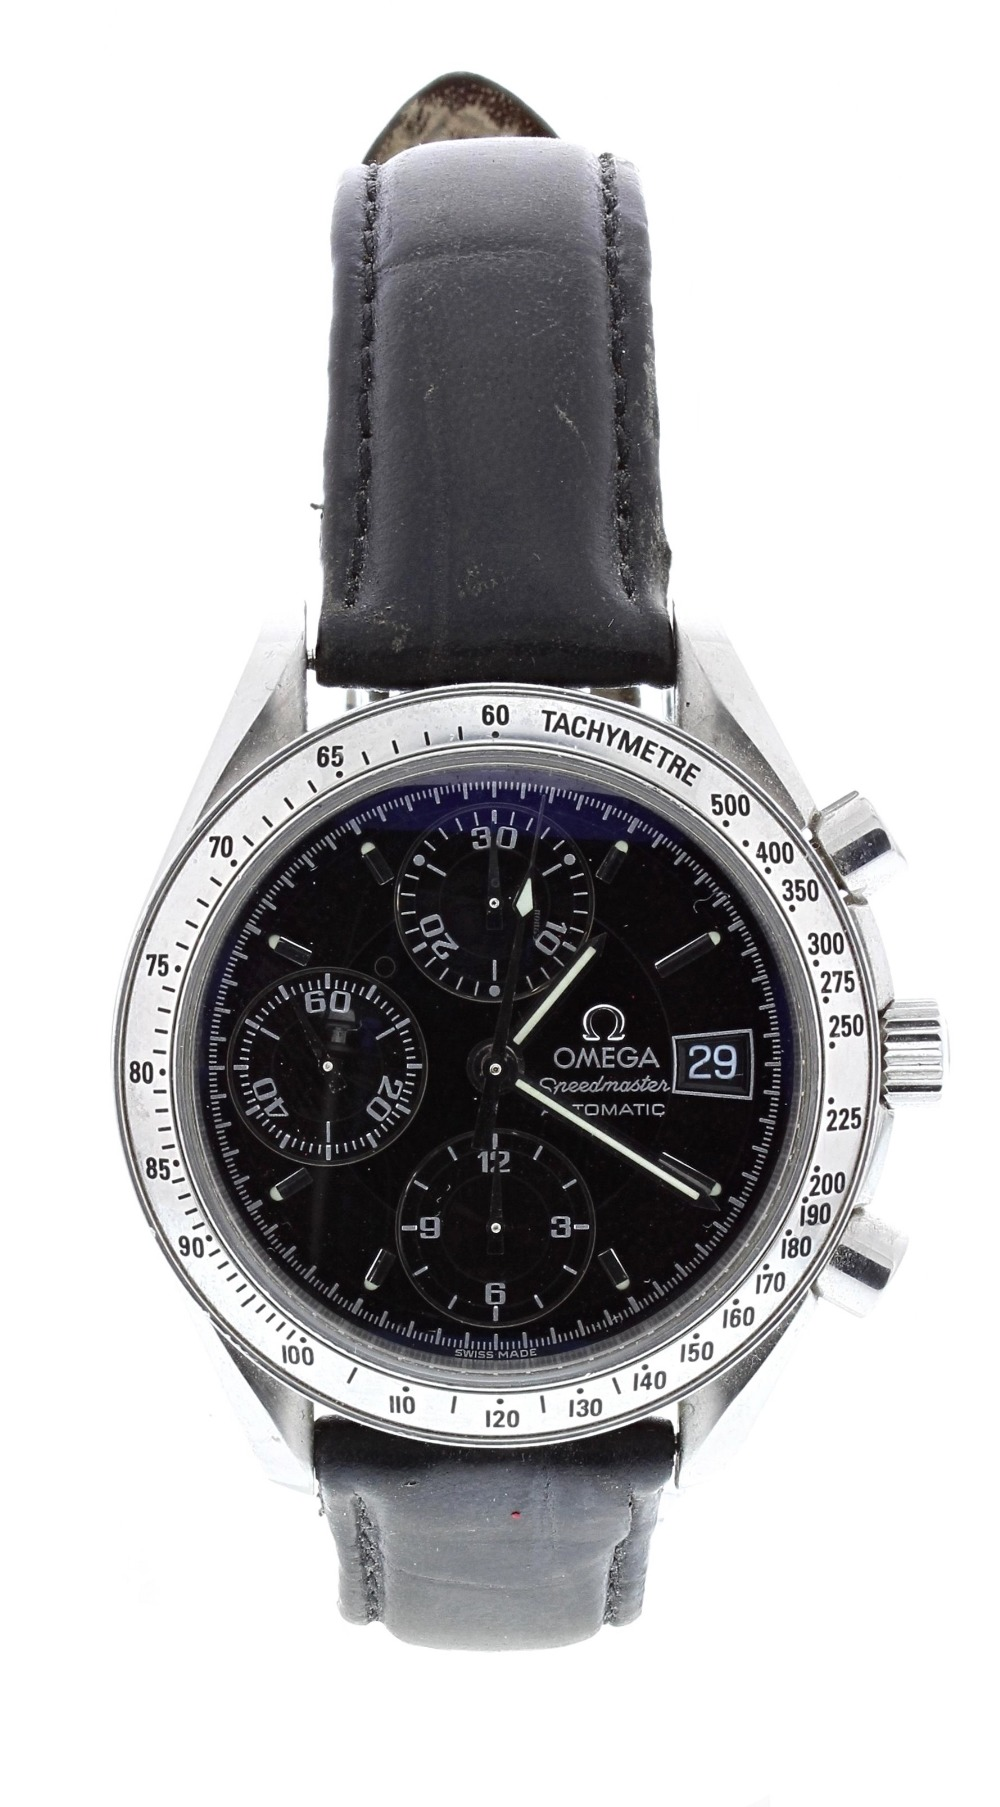 Lot 29 - Omega Speedmaster chronograph automatic stainless steel gentleman's wristwatch, ref. 3813.50CL,